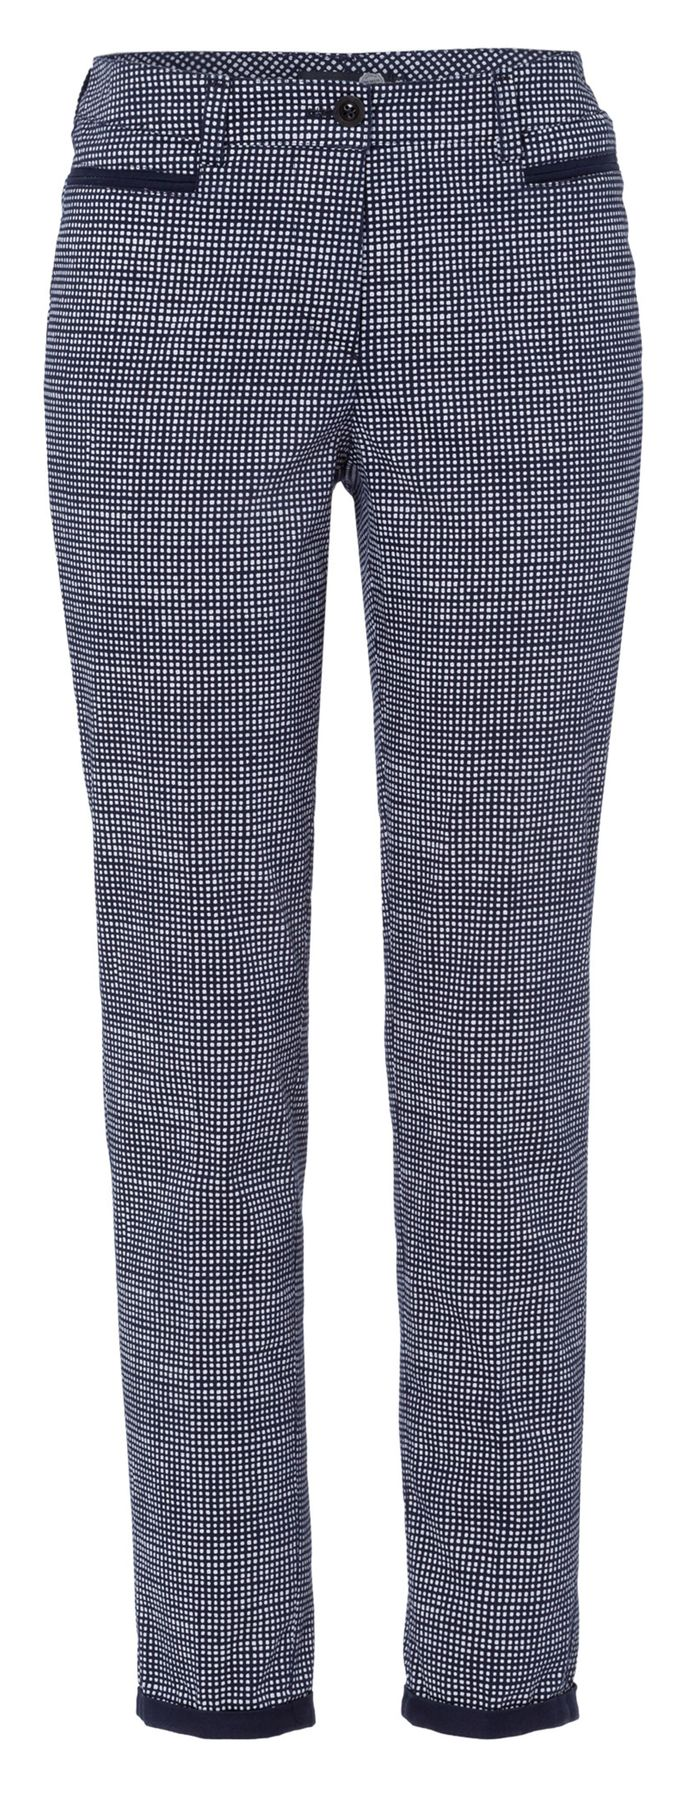 Atelier Gardeur - Slim Fit - Damen 5-Pocket Hose Denise1 (641381) – Bild 1